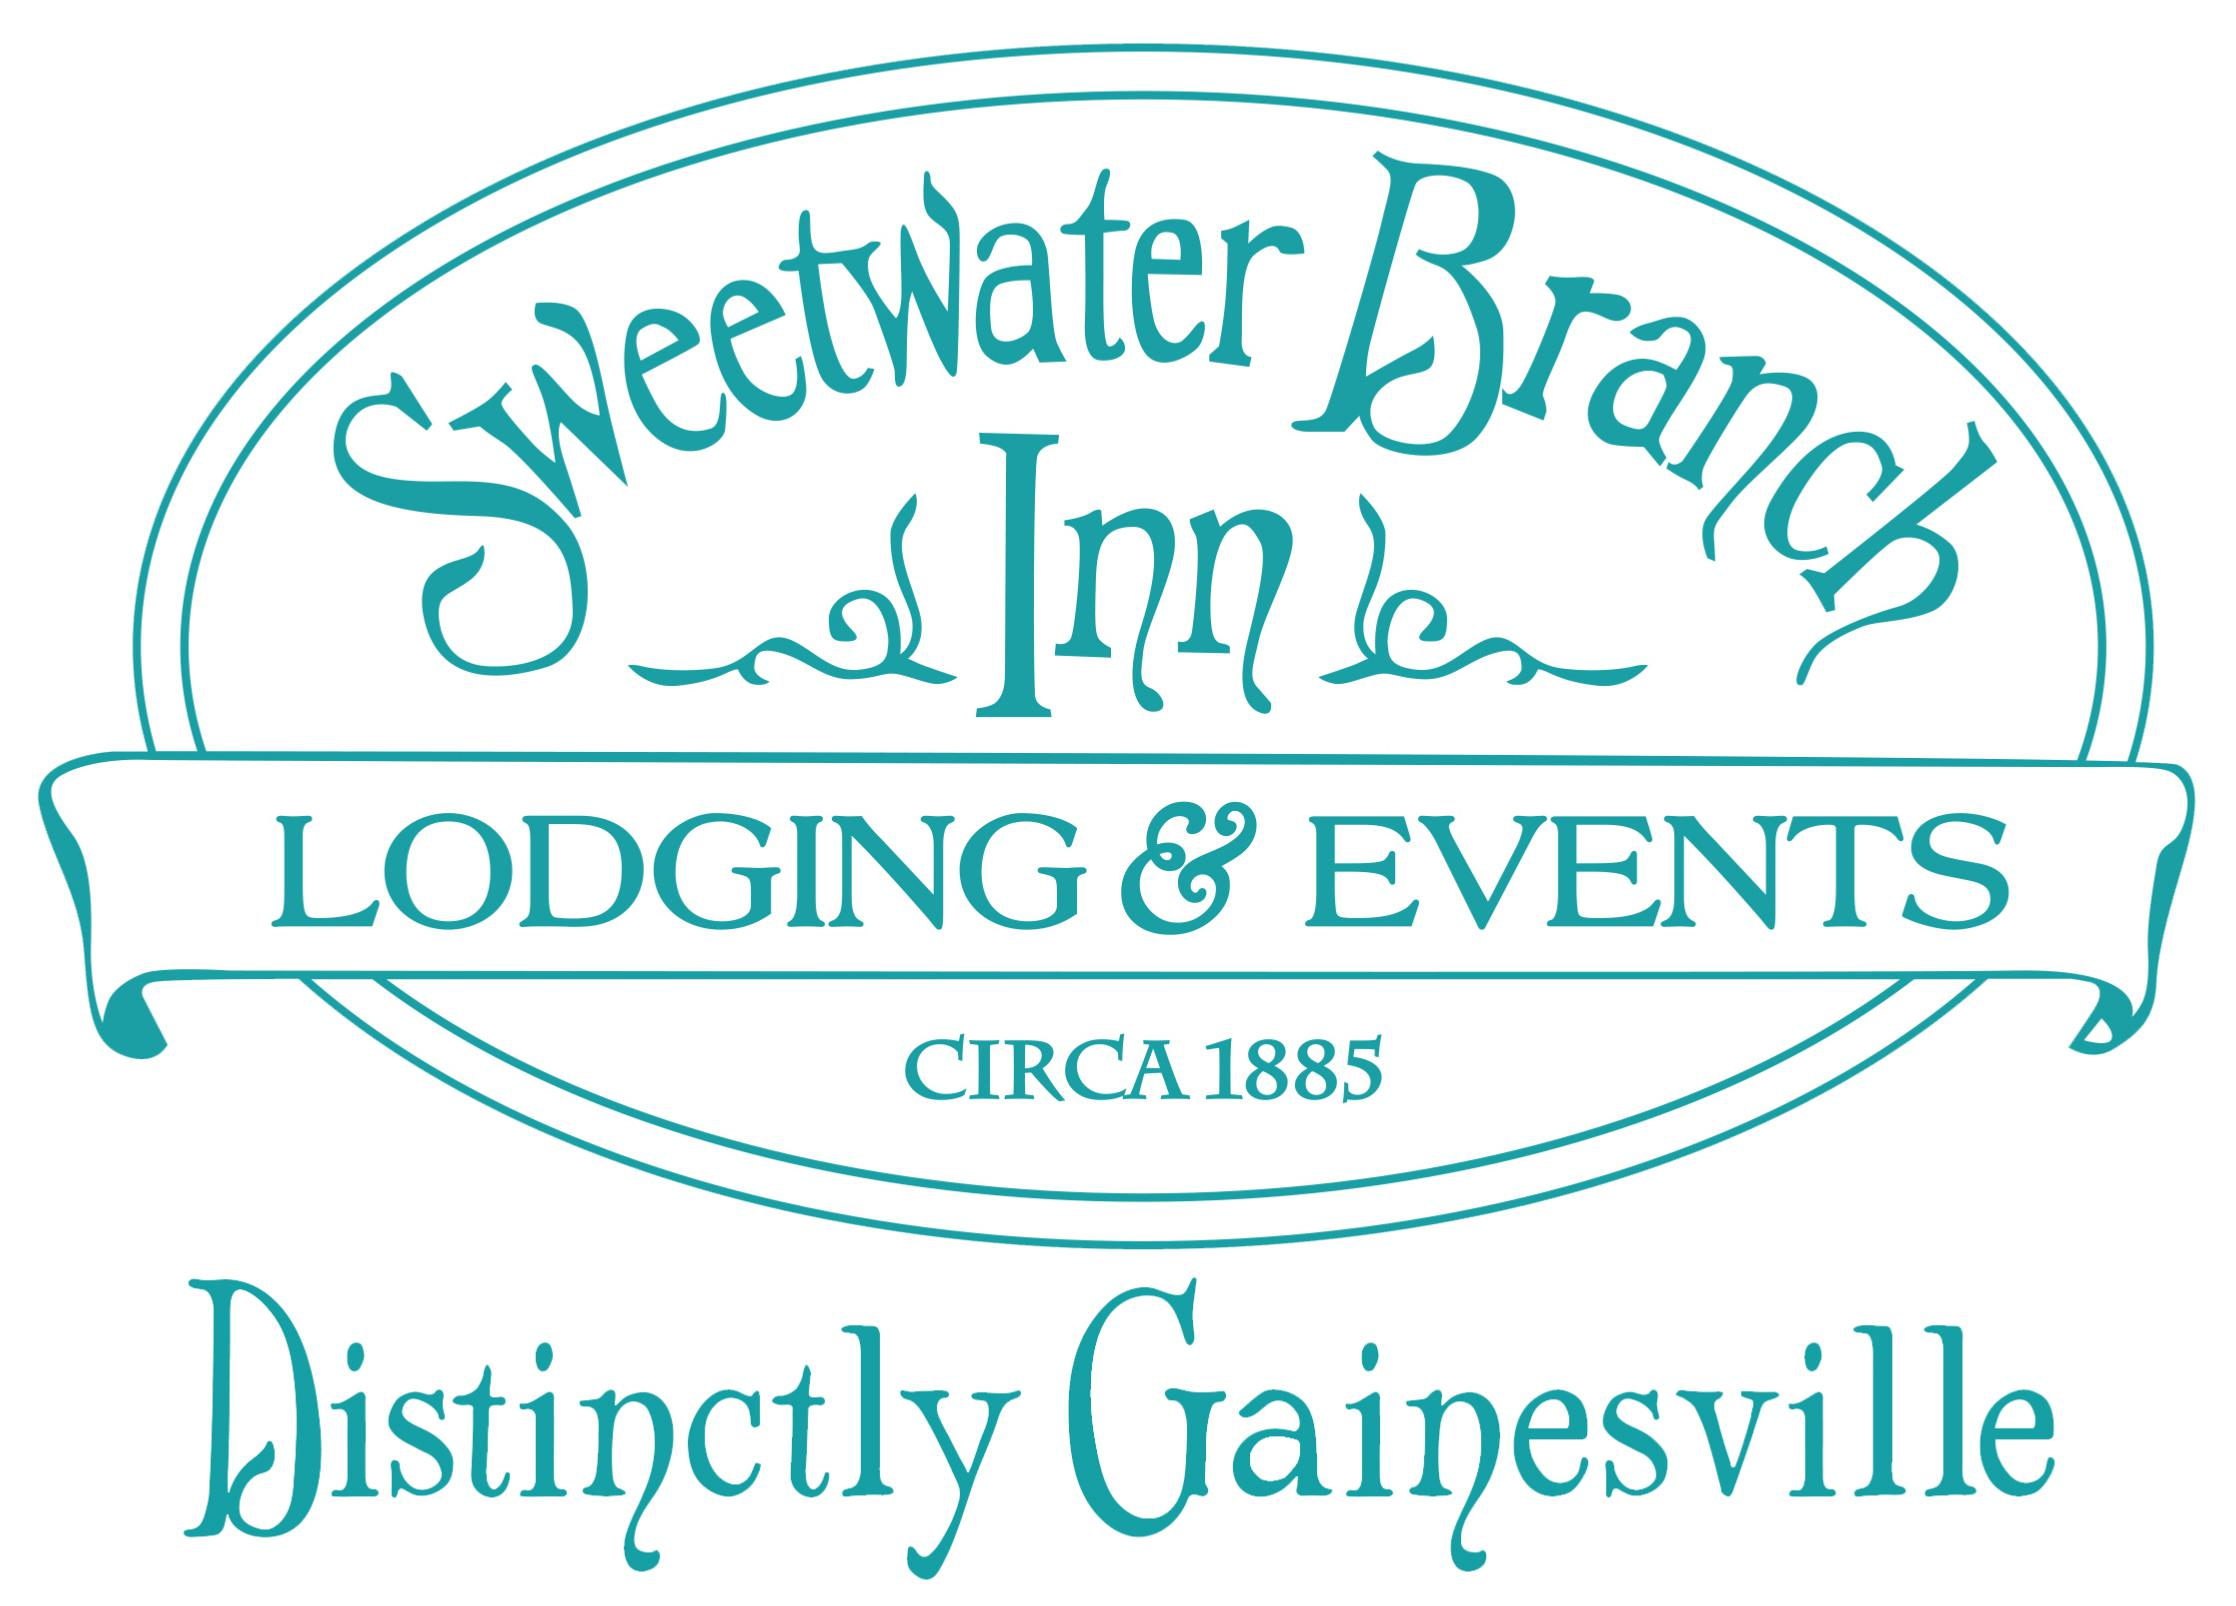 Sweetwater Branch Inn